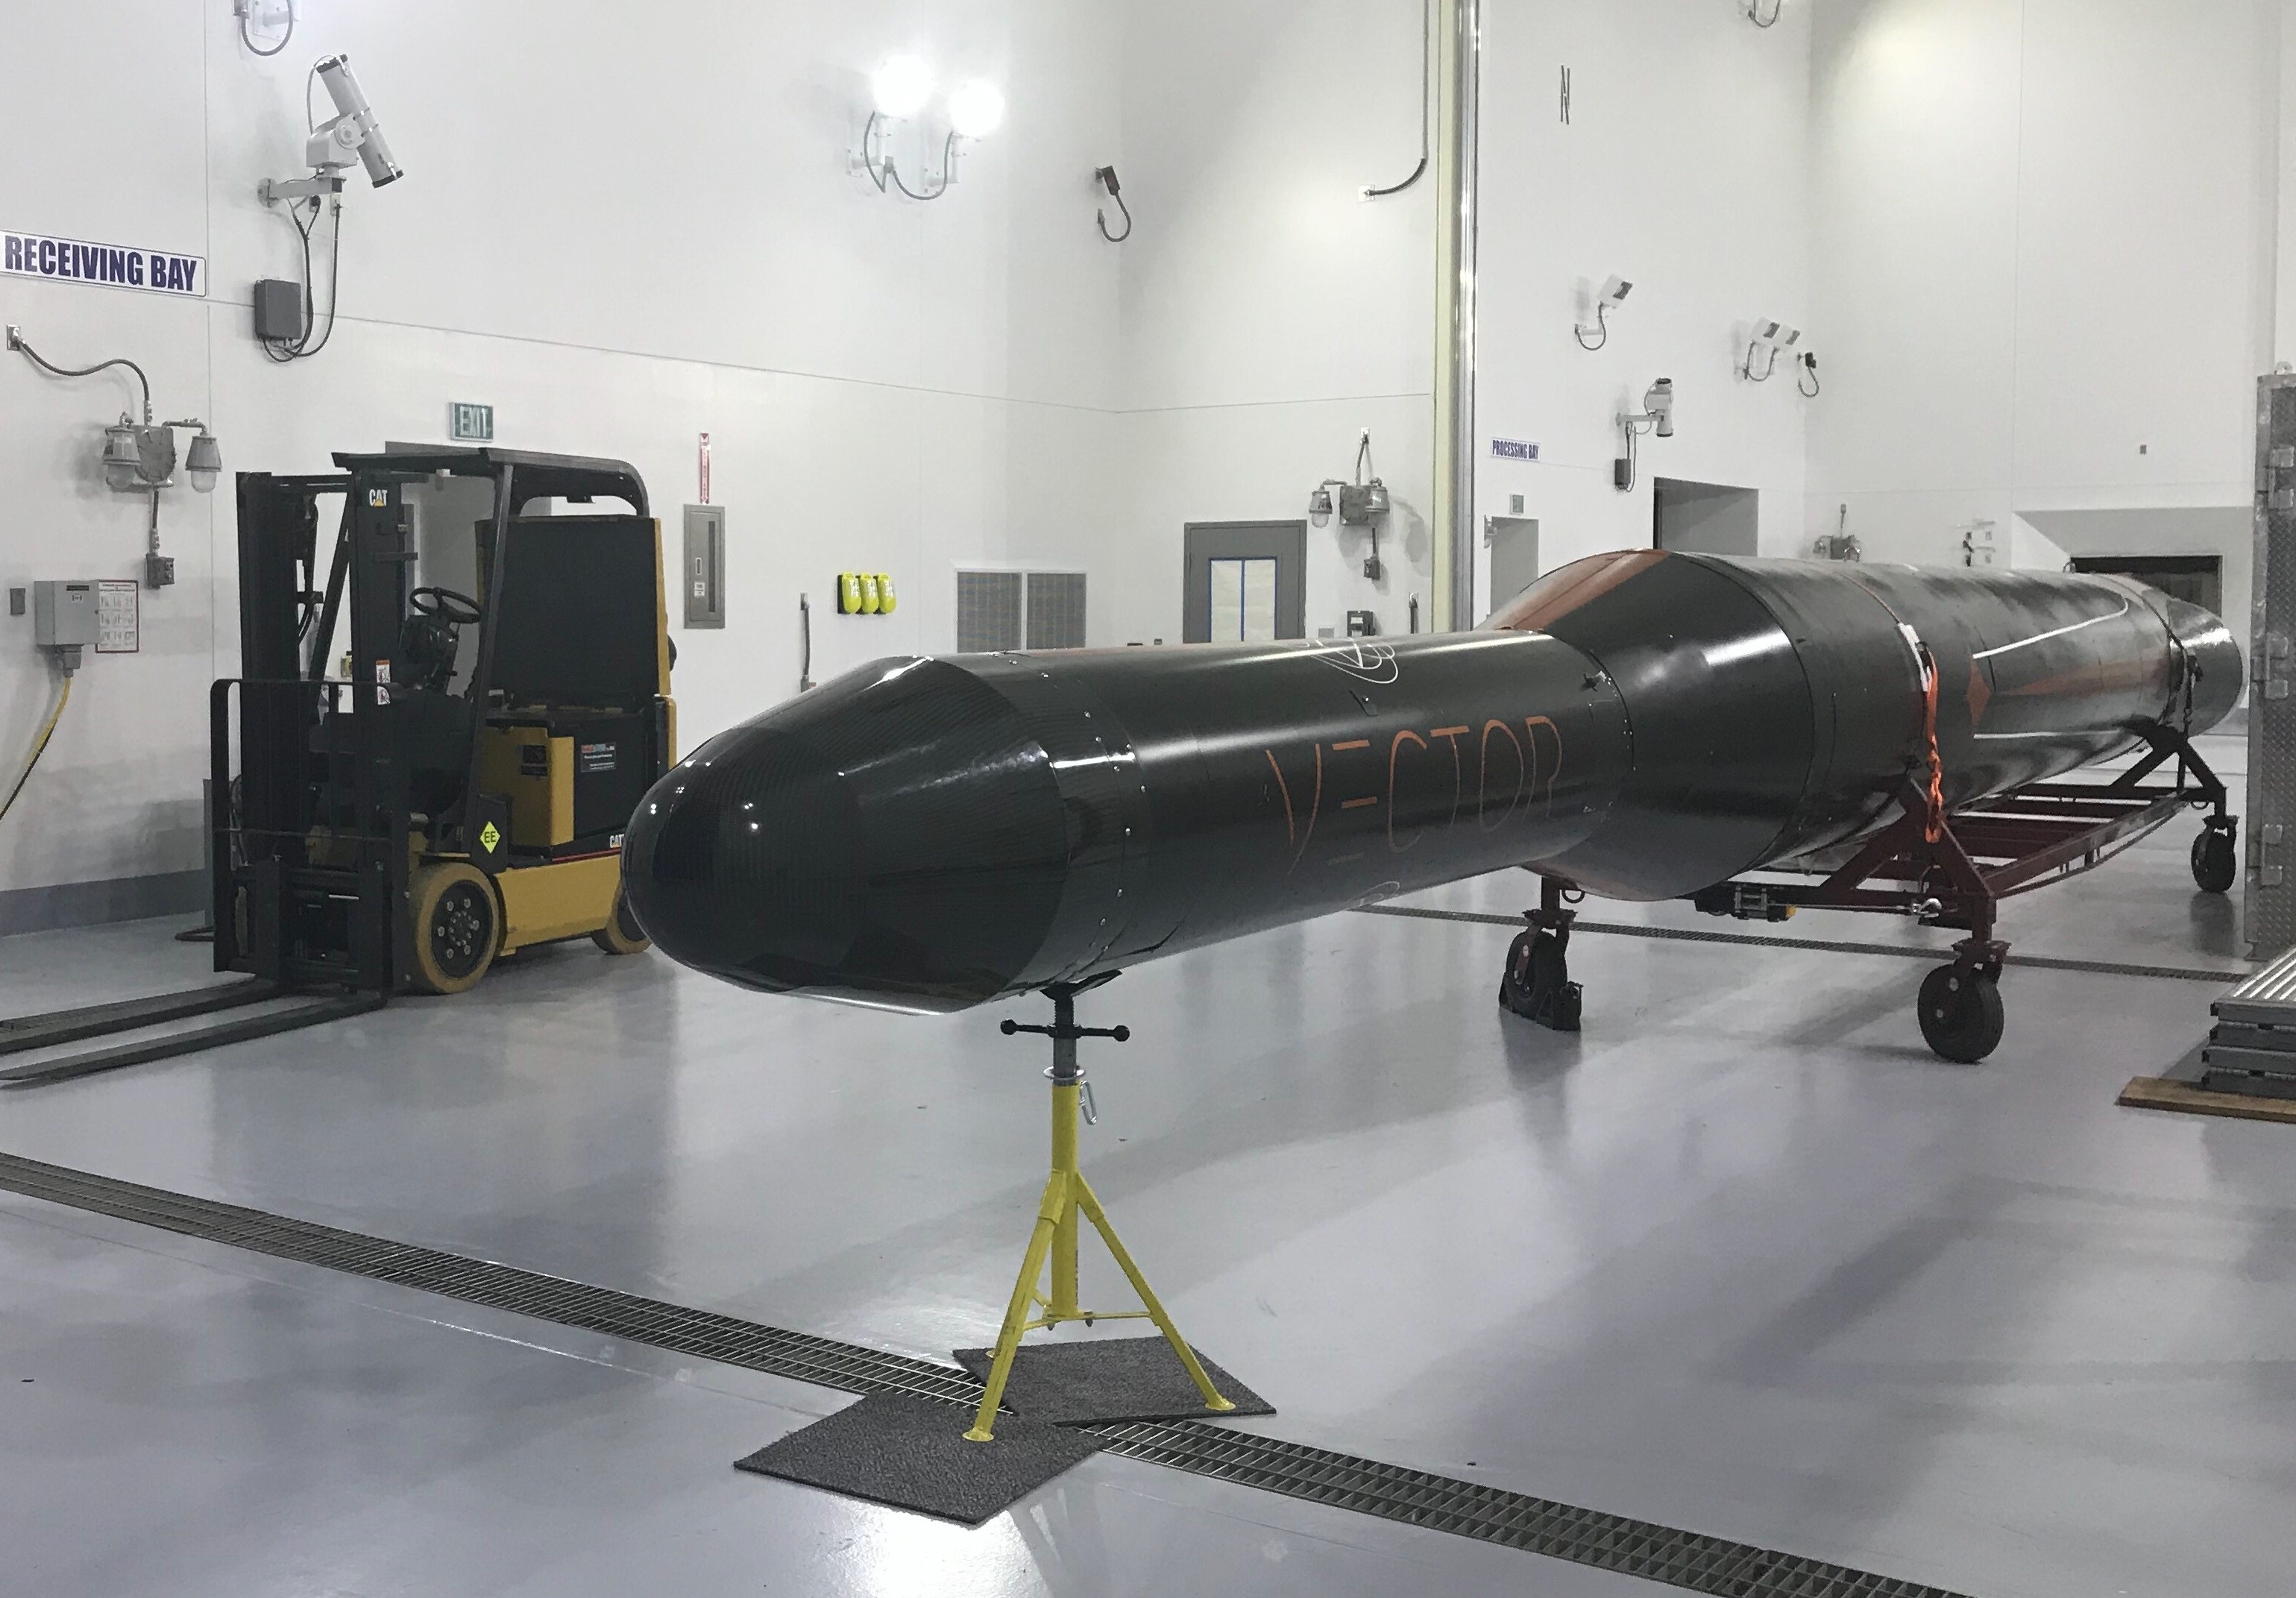 A Vector test rocket, or vehicle, housed inside the Alaska Aerospace Corporation facility. (Photo by Daysha Eaton/KMXT)